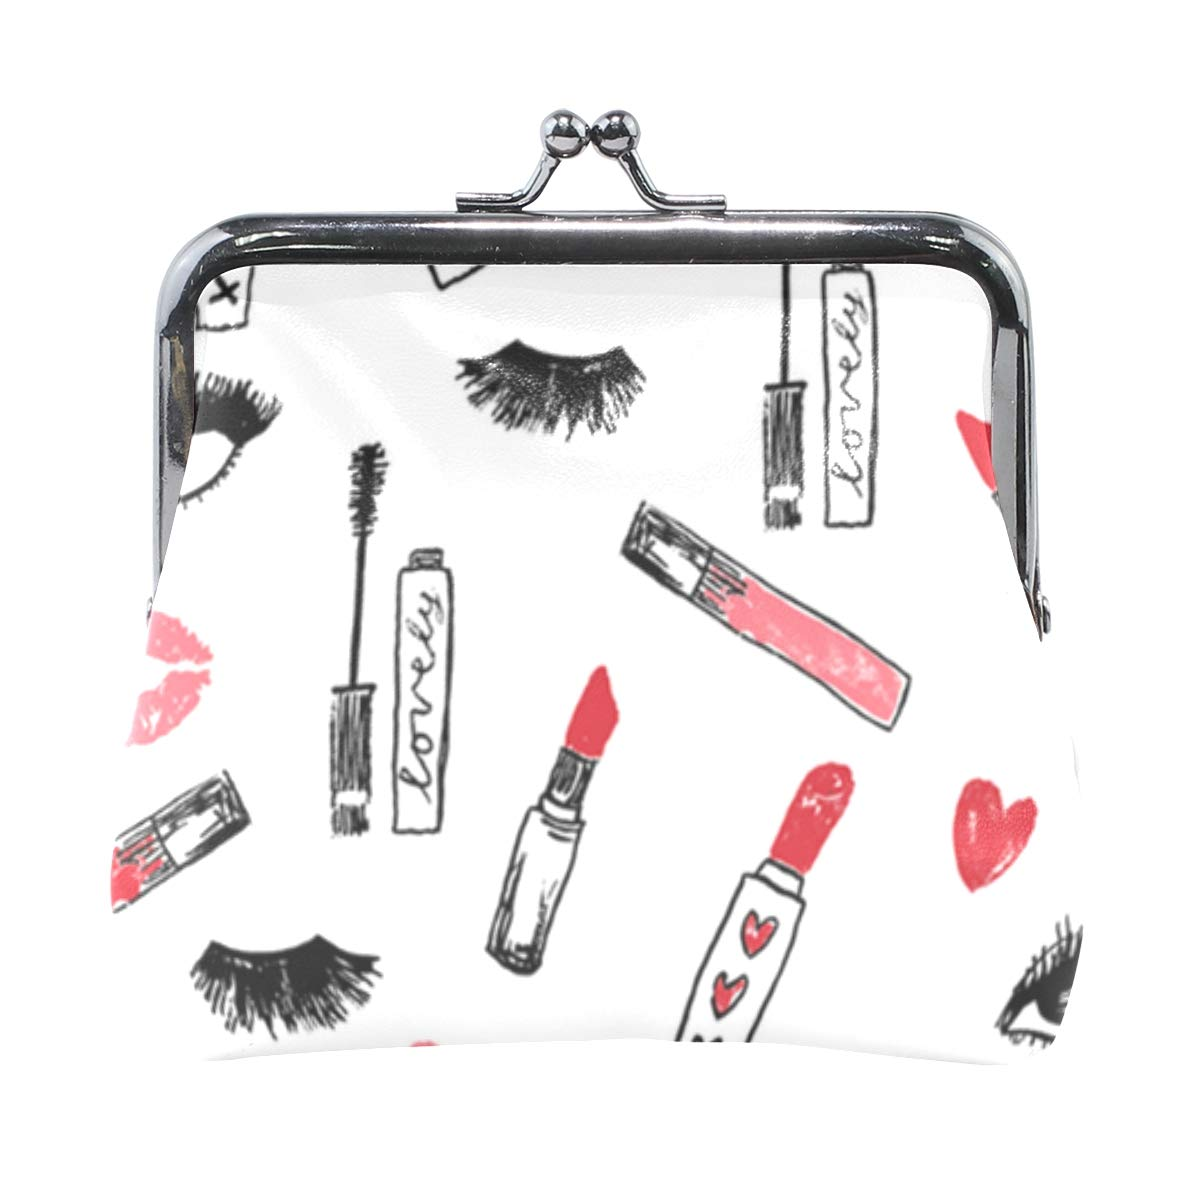 Makeup Lipstick Eyelashes Beauty Coin Purse Buckle Vintage PU Pouch Kiss-lock Wallet for Women Girl